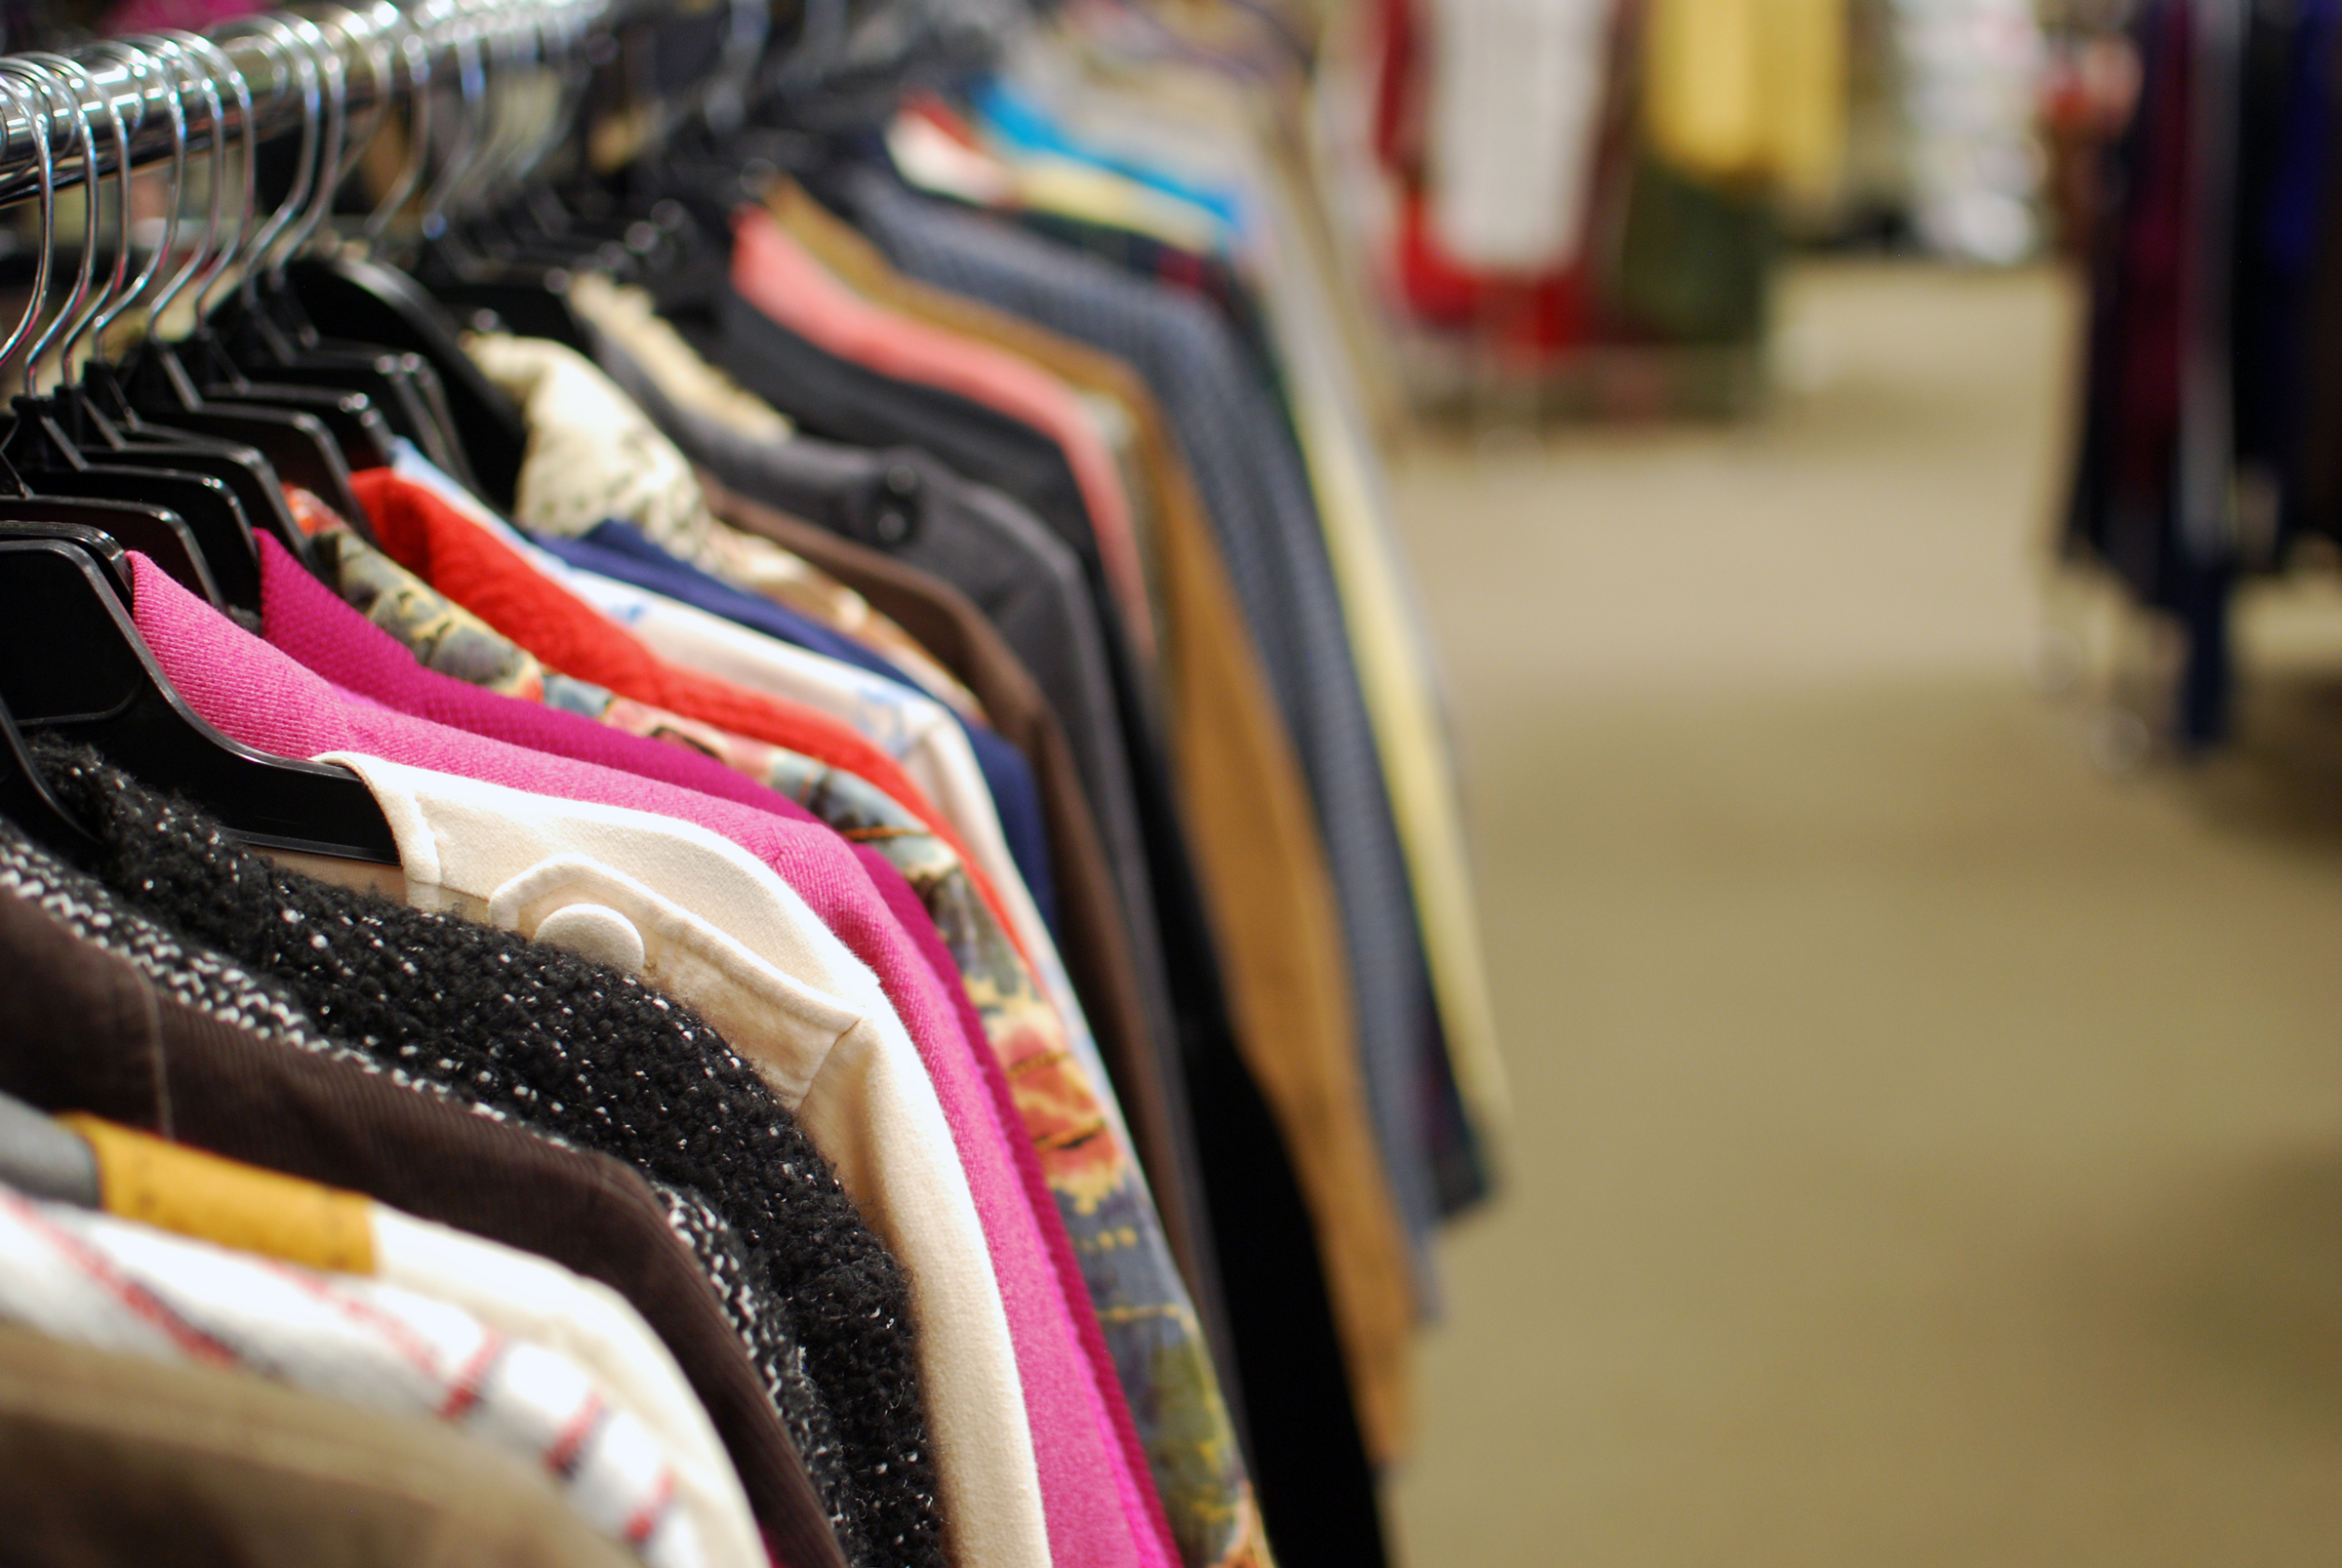 Bethany's is a thrift store with a mission.